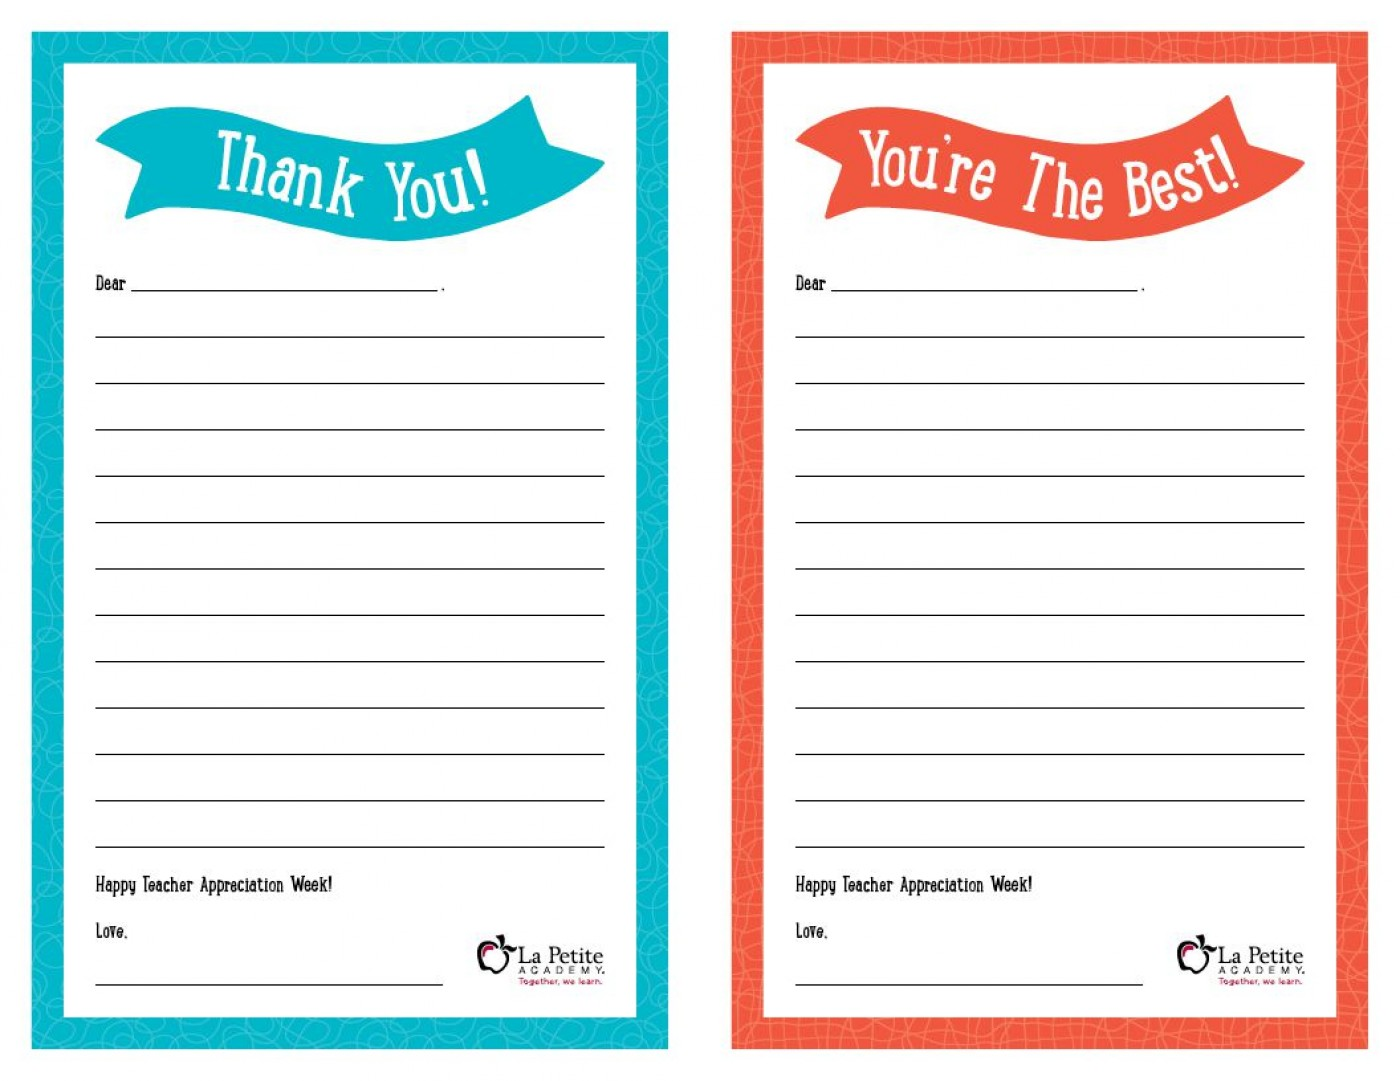 008 Remarkable Thank You Note Template Free Printable Idea 1400